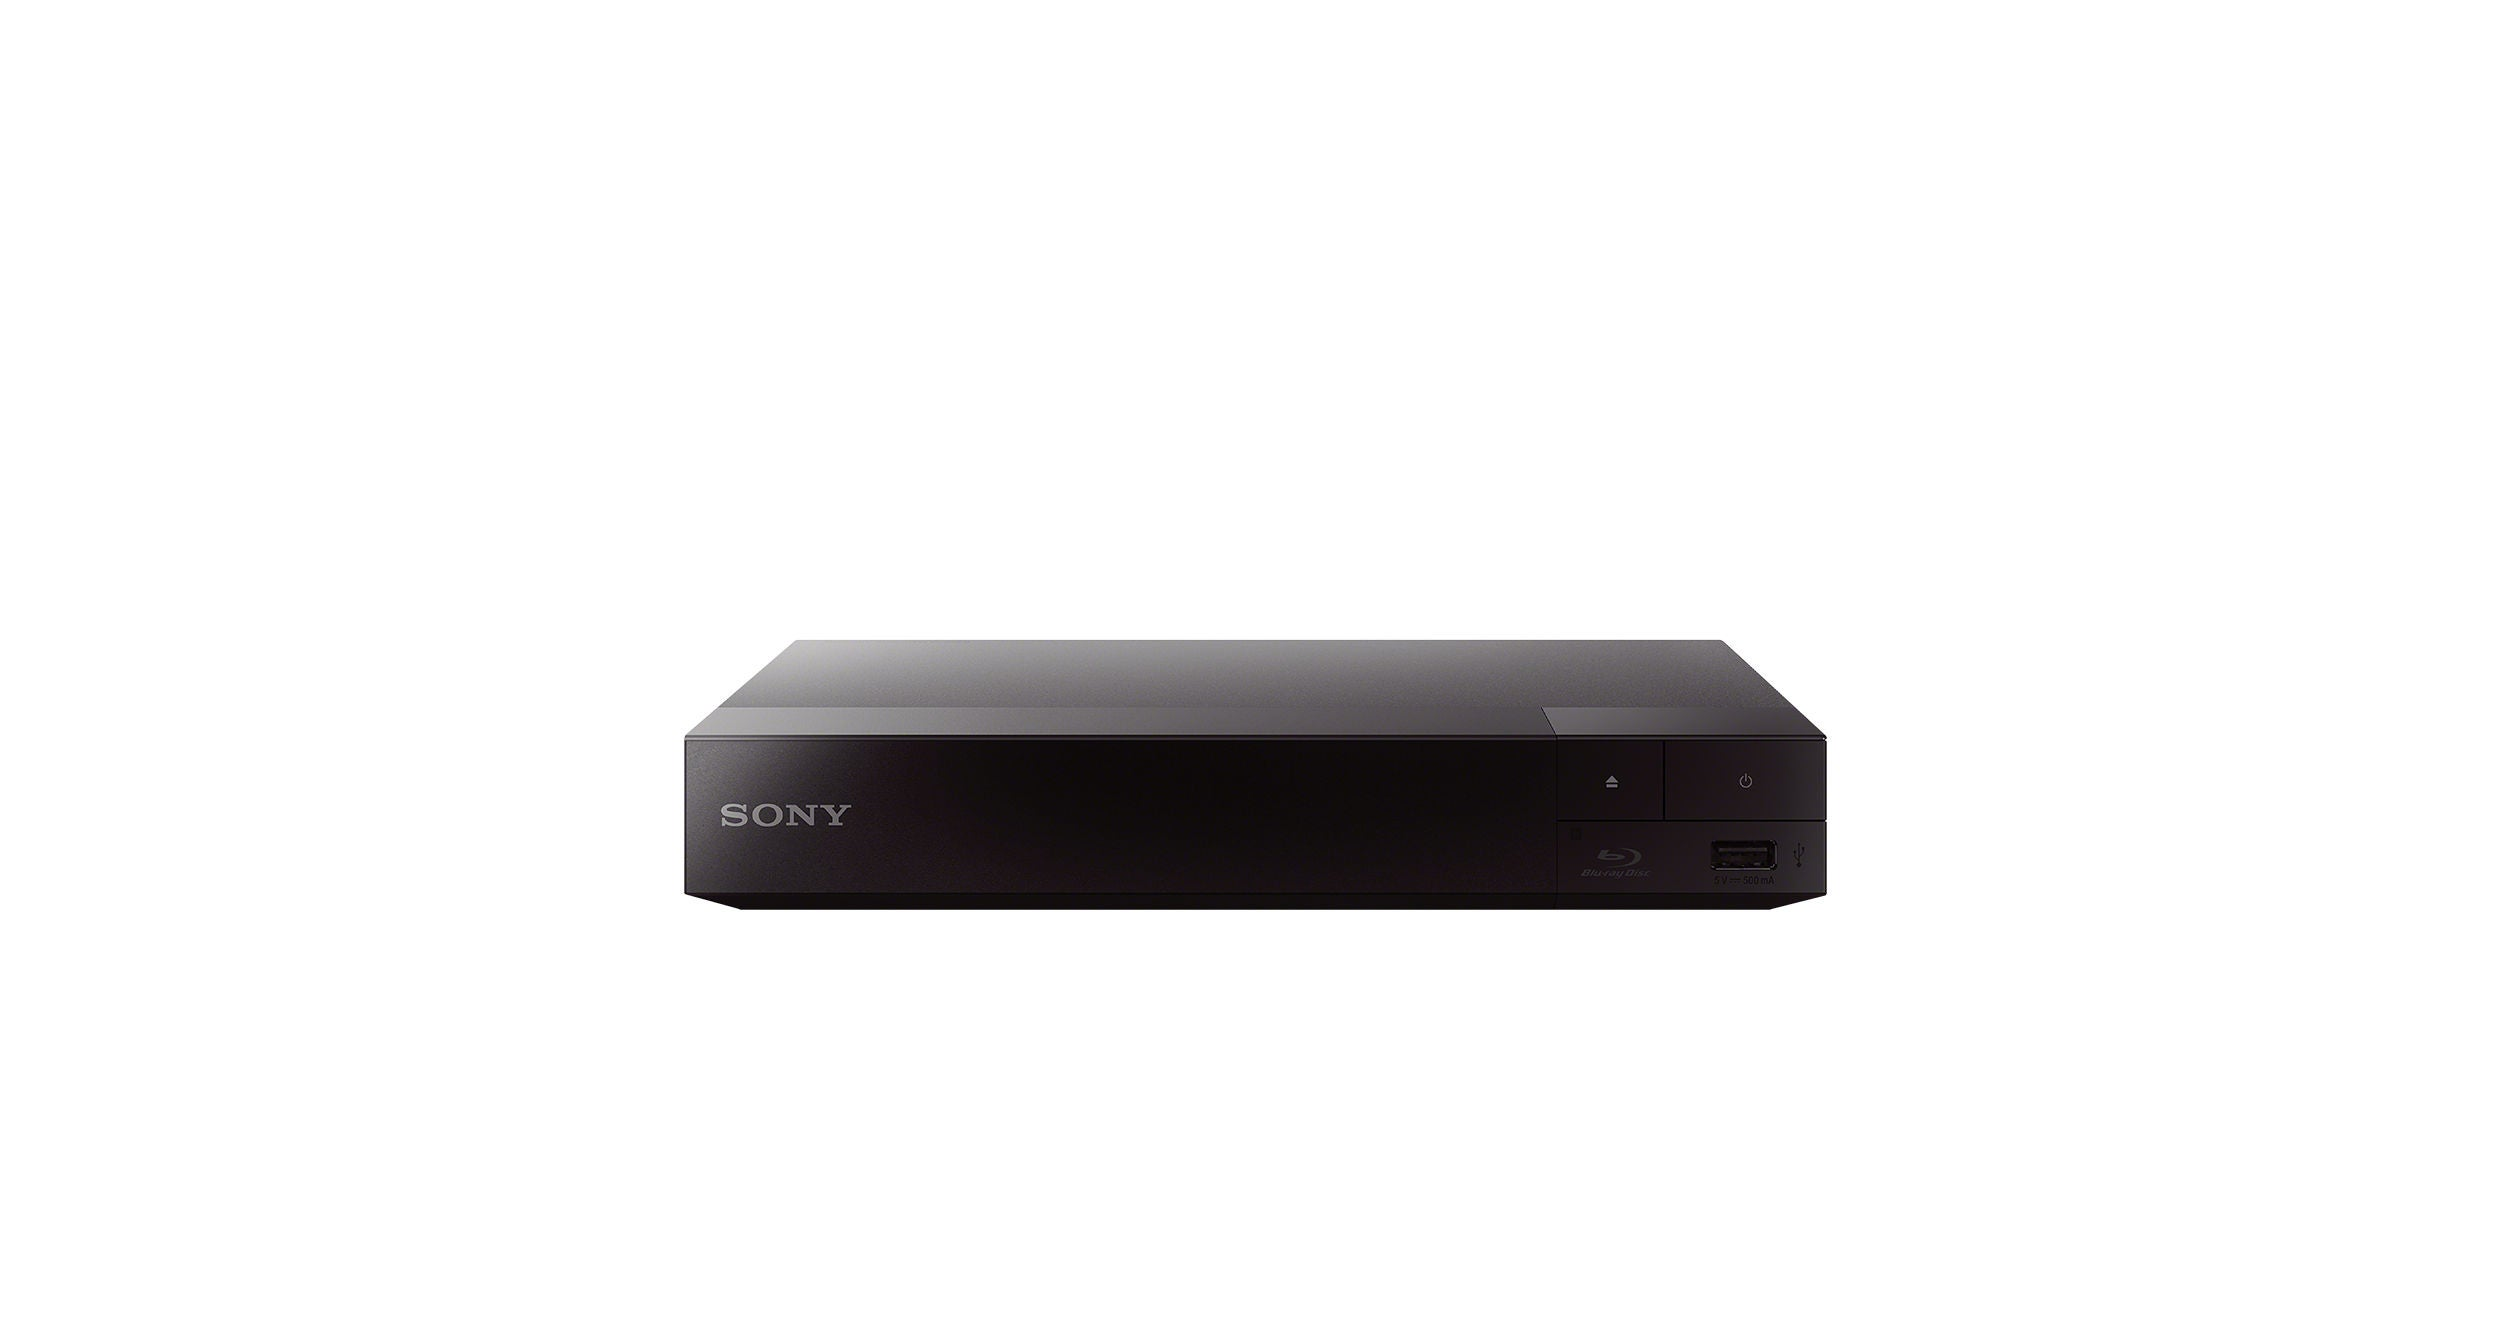 Sony BDPS3700 Streaming Wi-Fi Blu-Ray Player